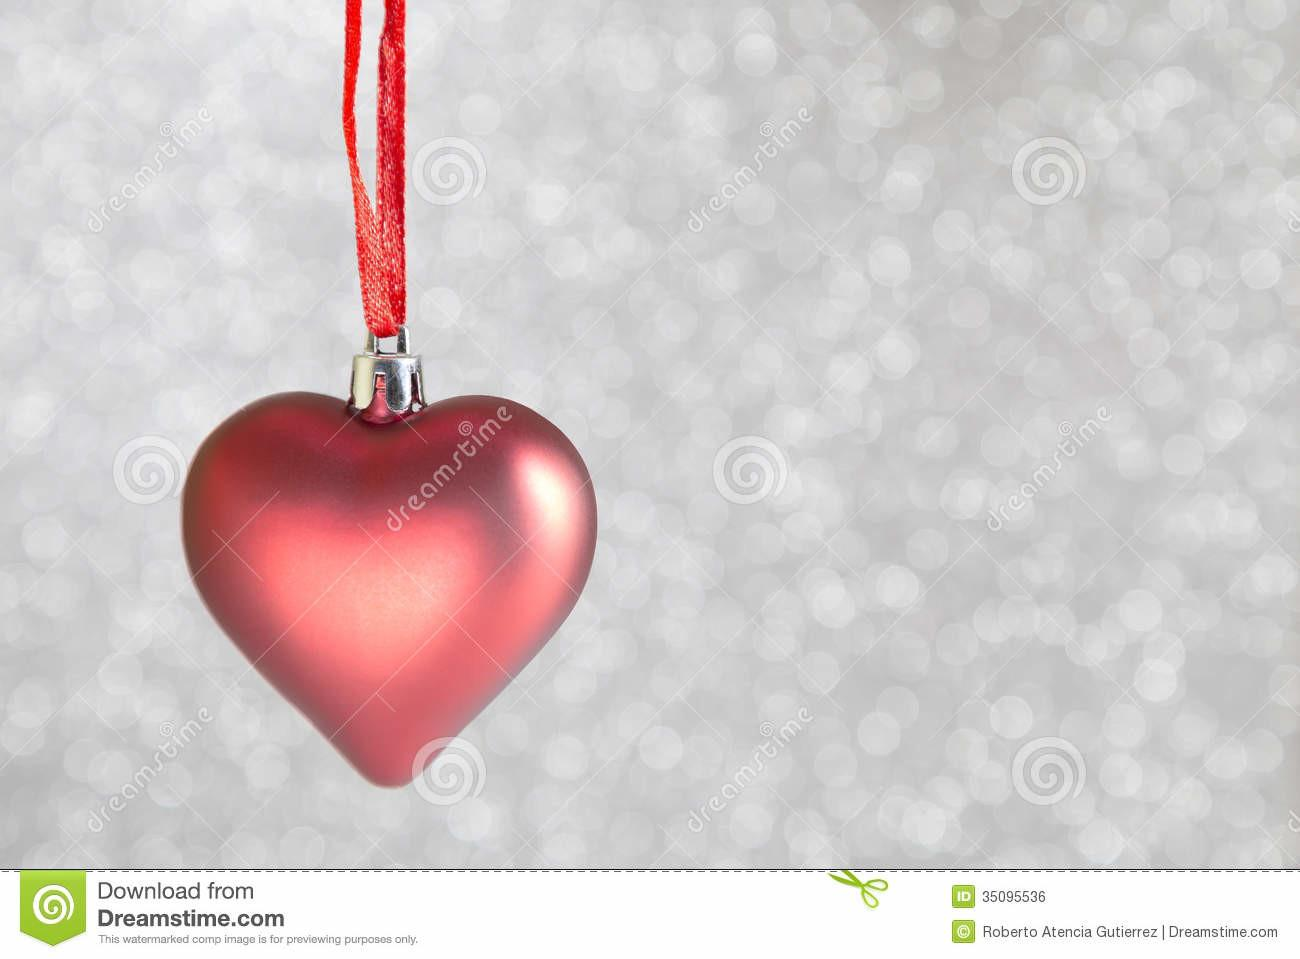 Christmas Ornaments Heart Shaped Stock